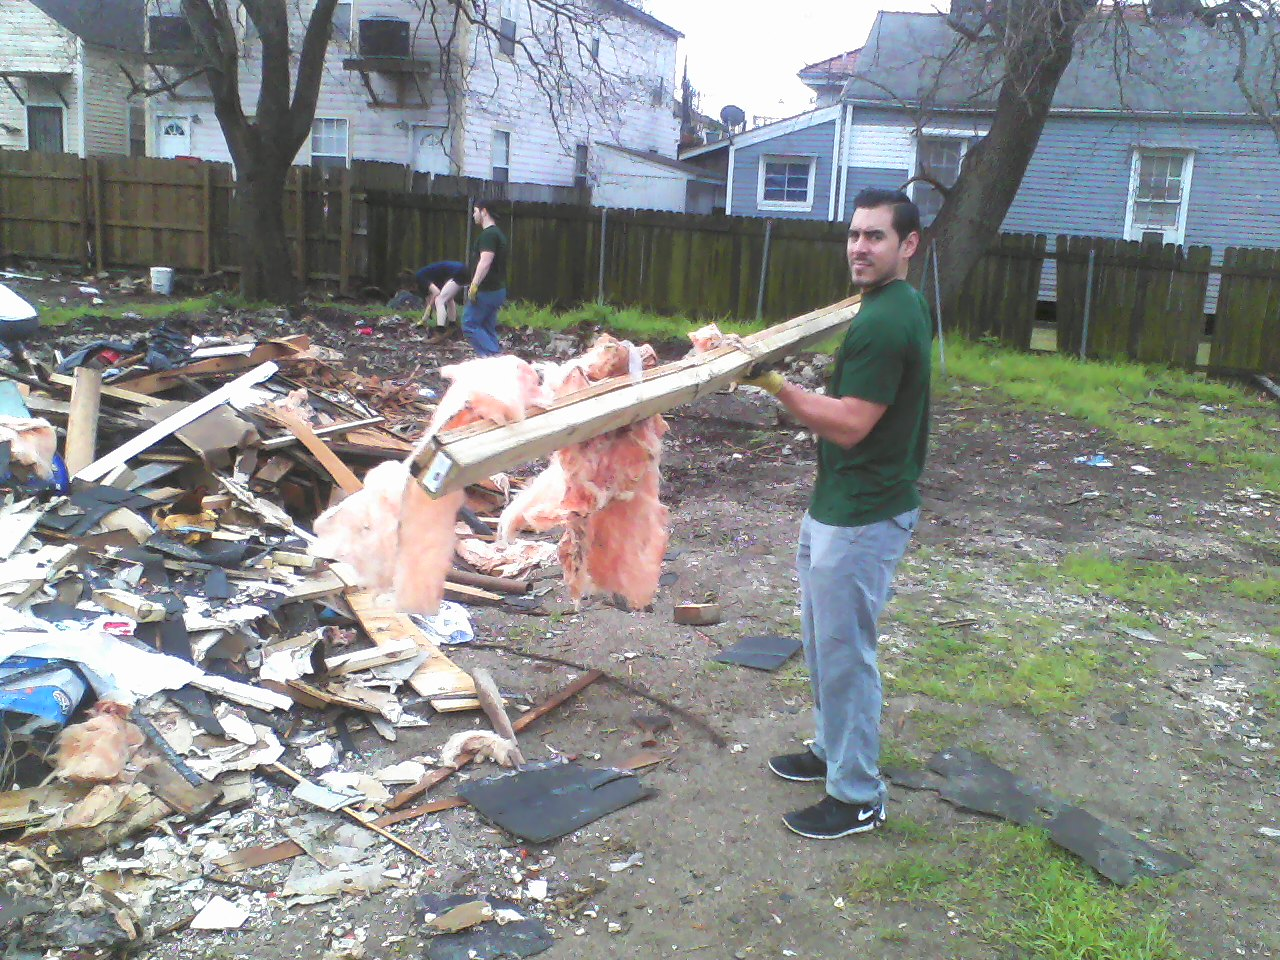 CJ finds some salvageable wood.